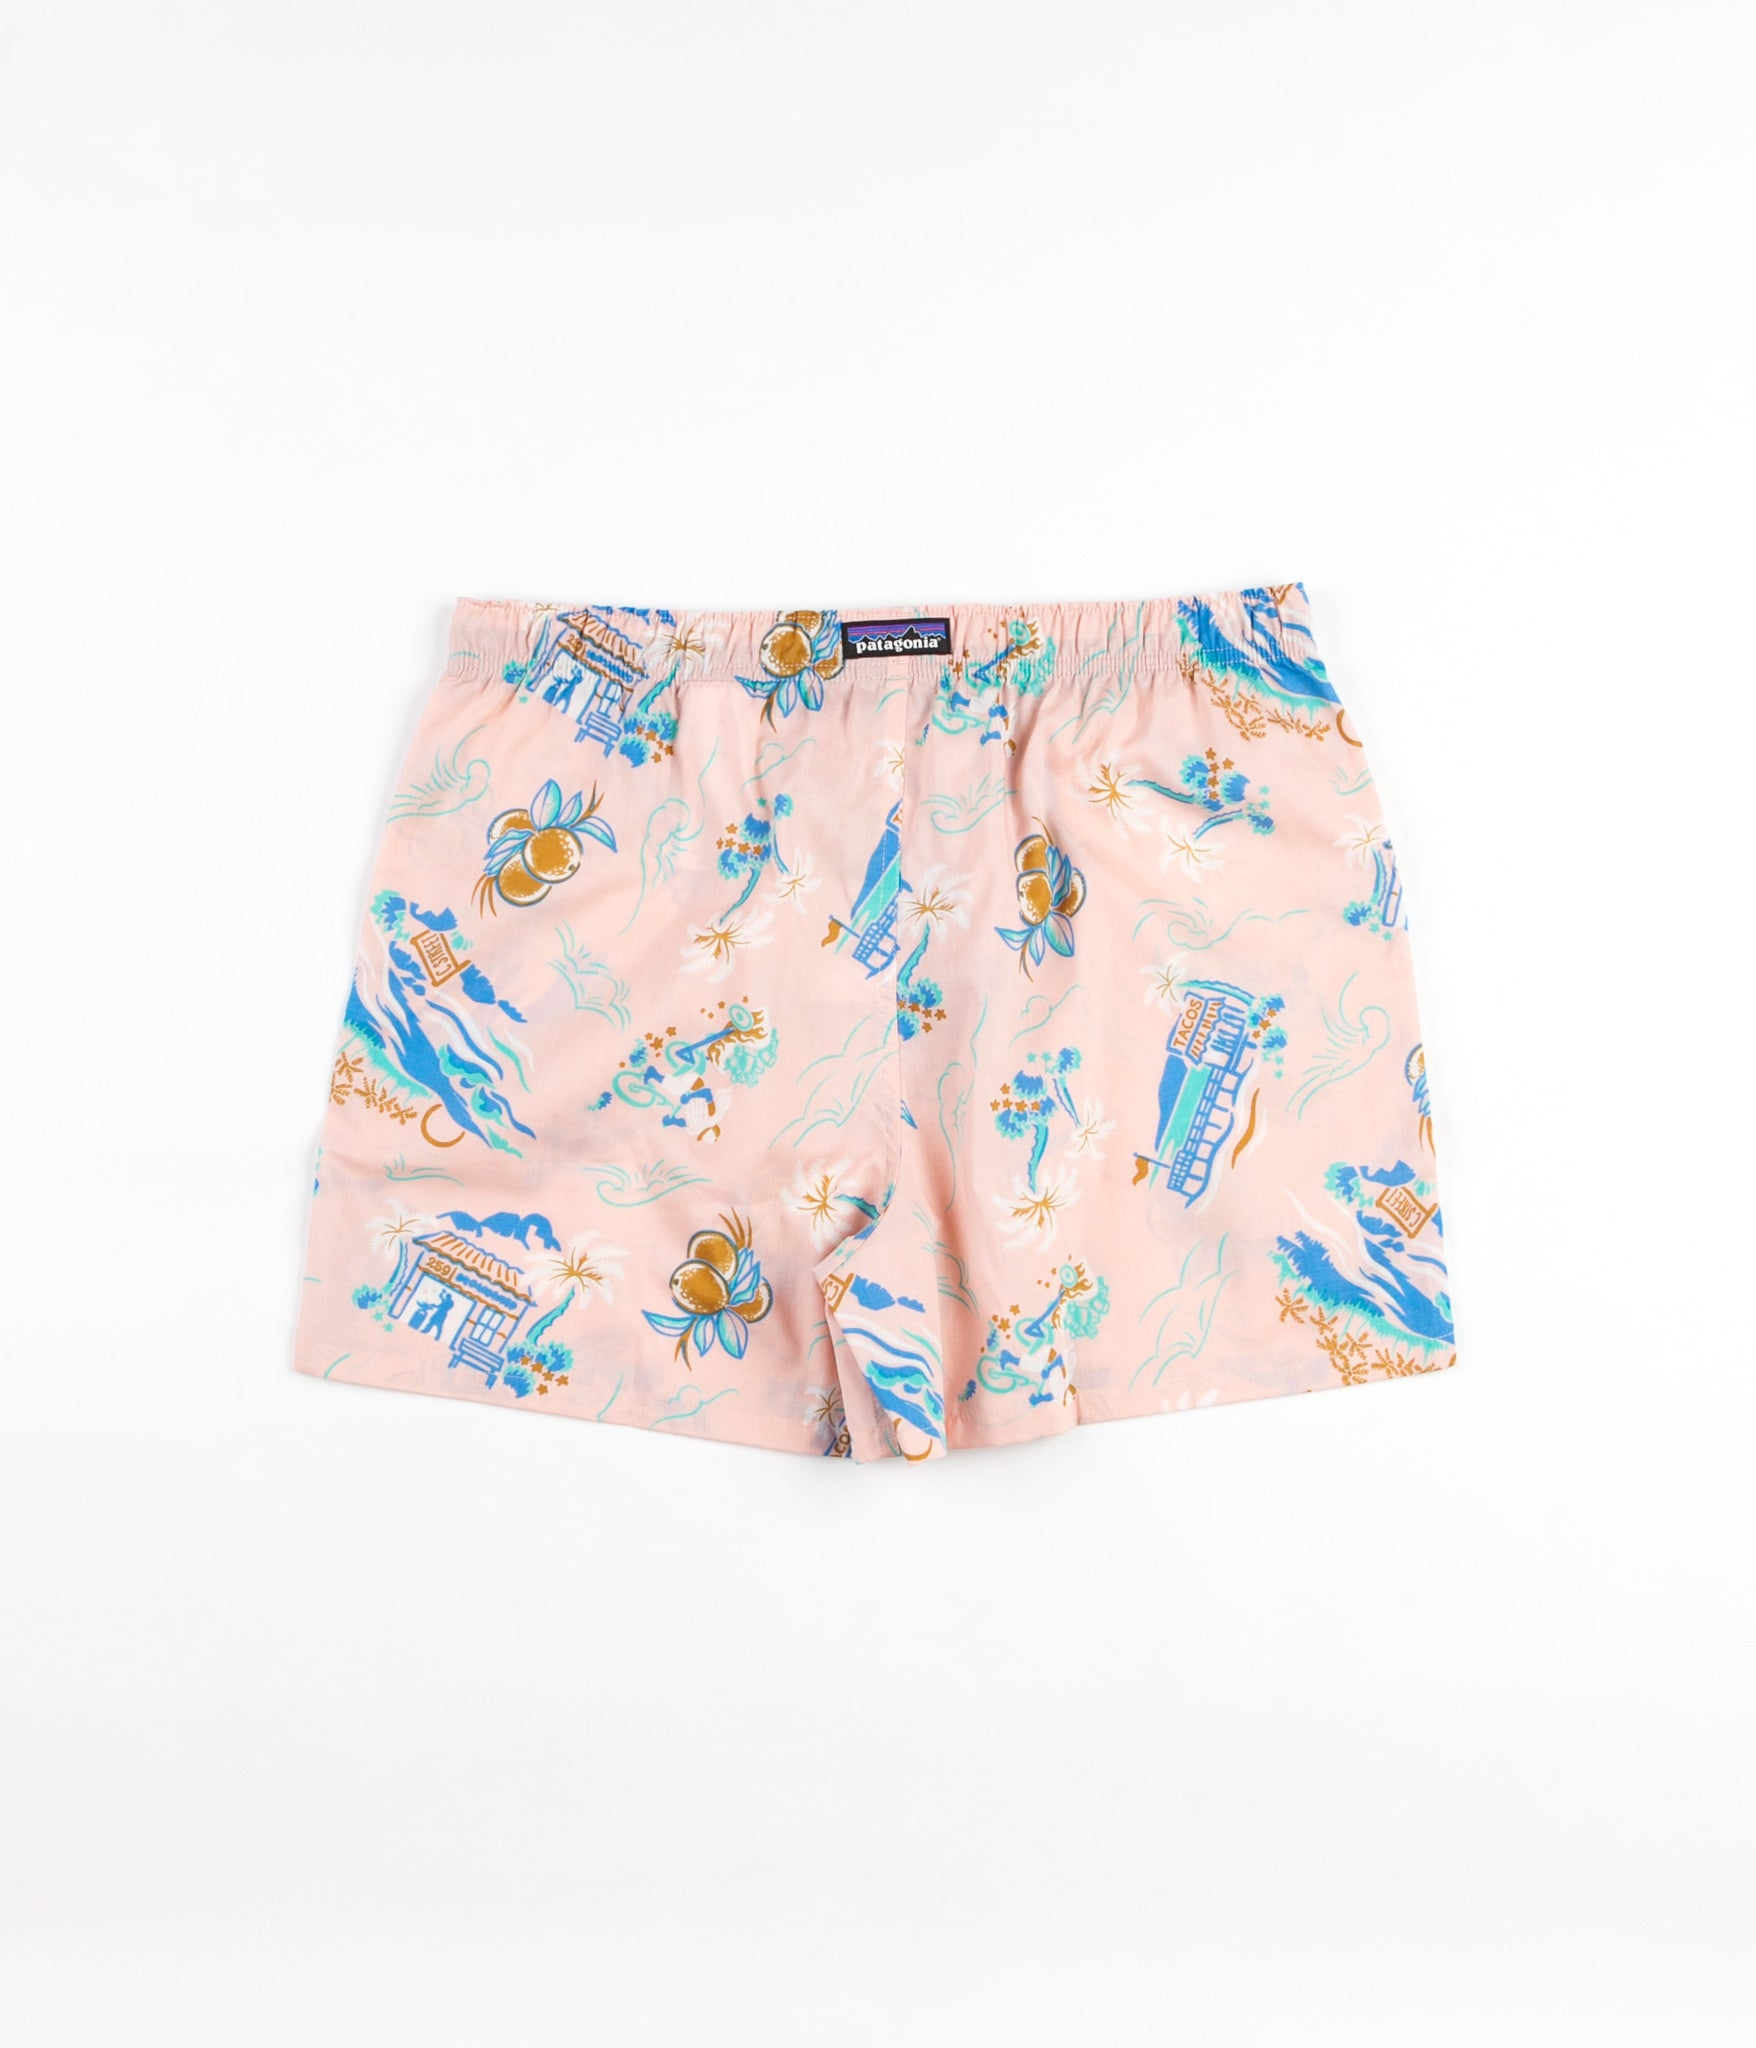 Patagonia Go-To Boxers - C Street / Feather Pink